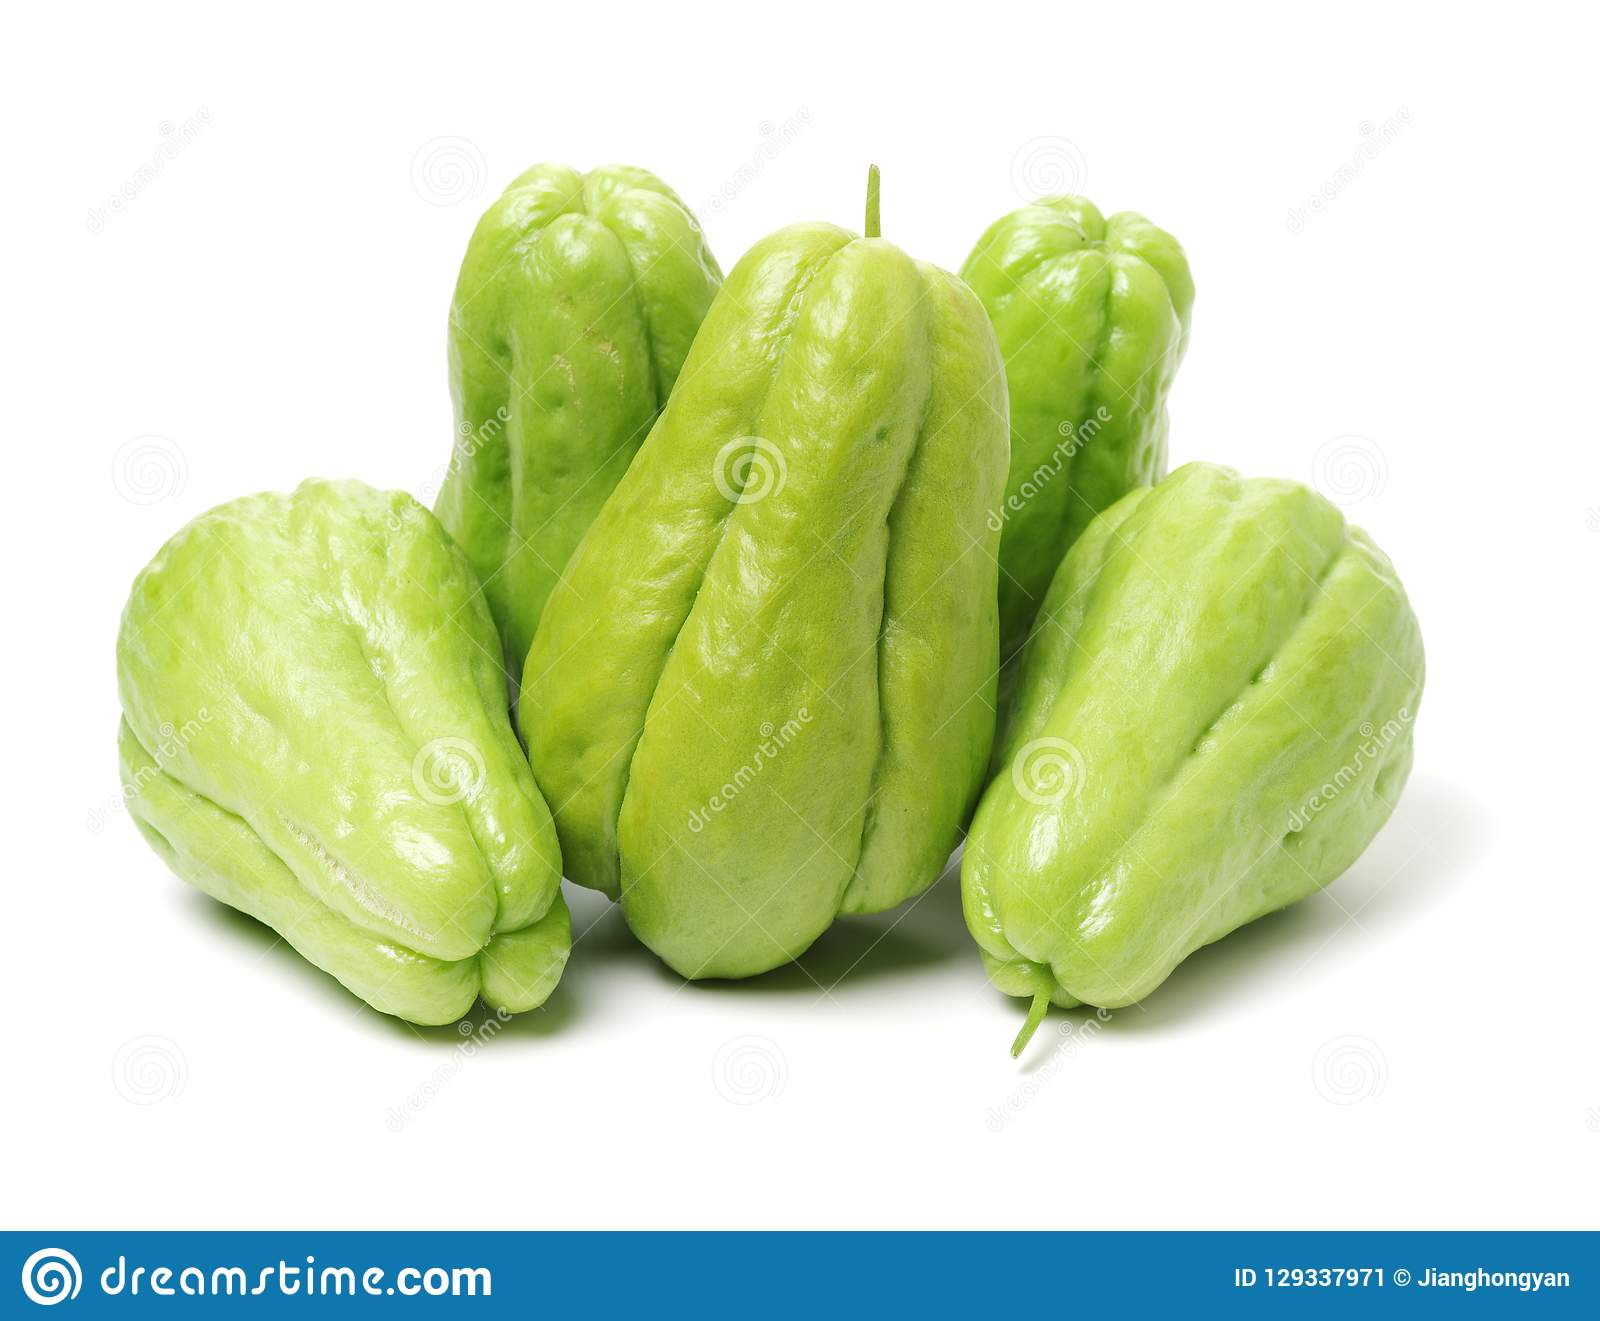 Chayote is a member of the squash, i buy from suppermaket